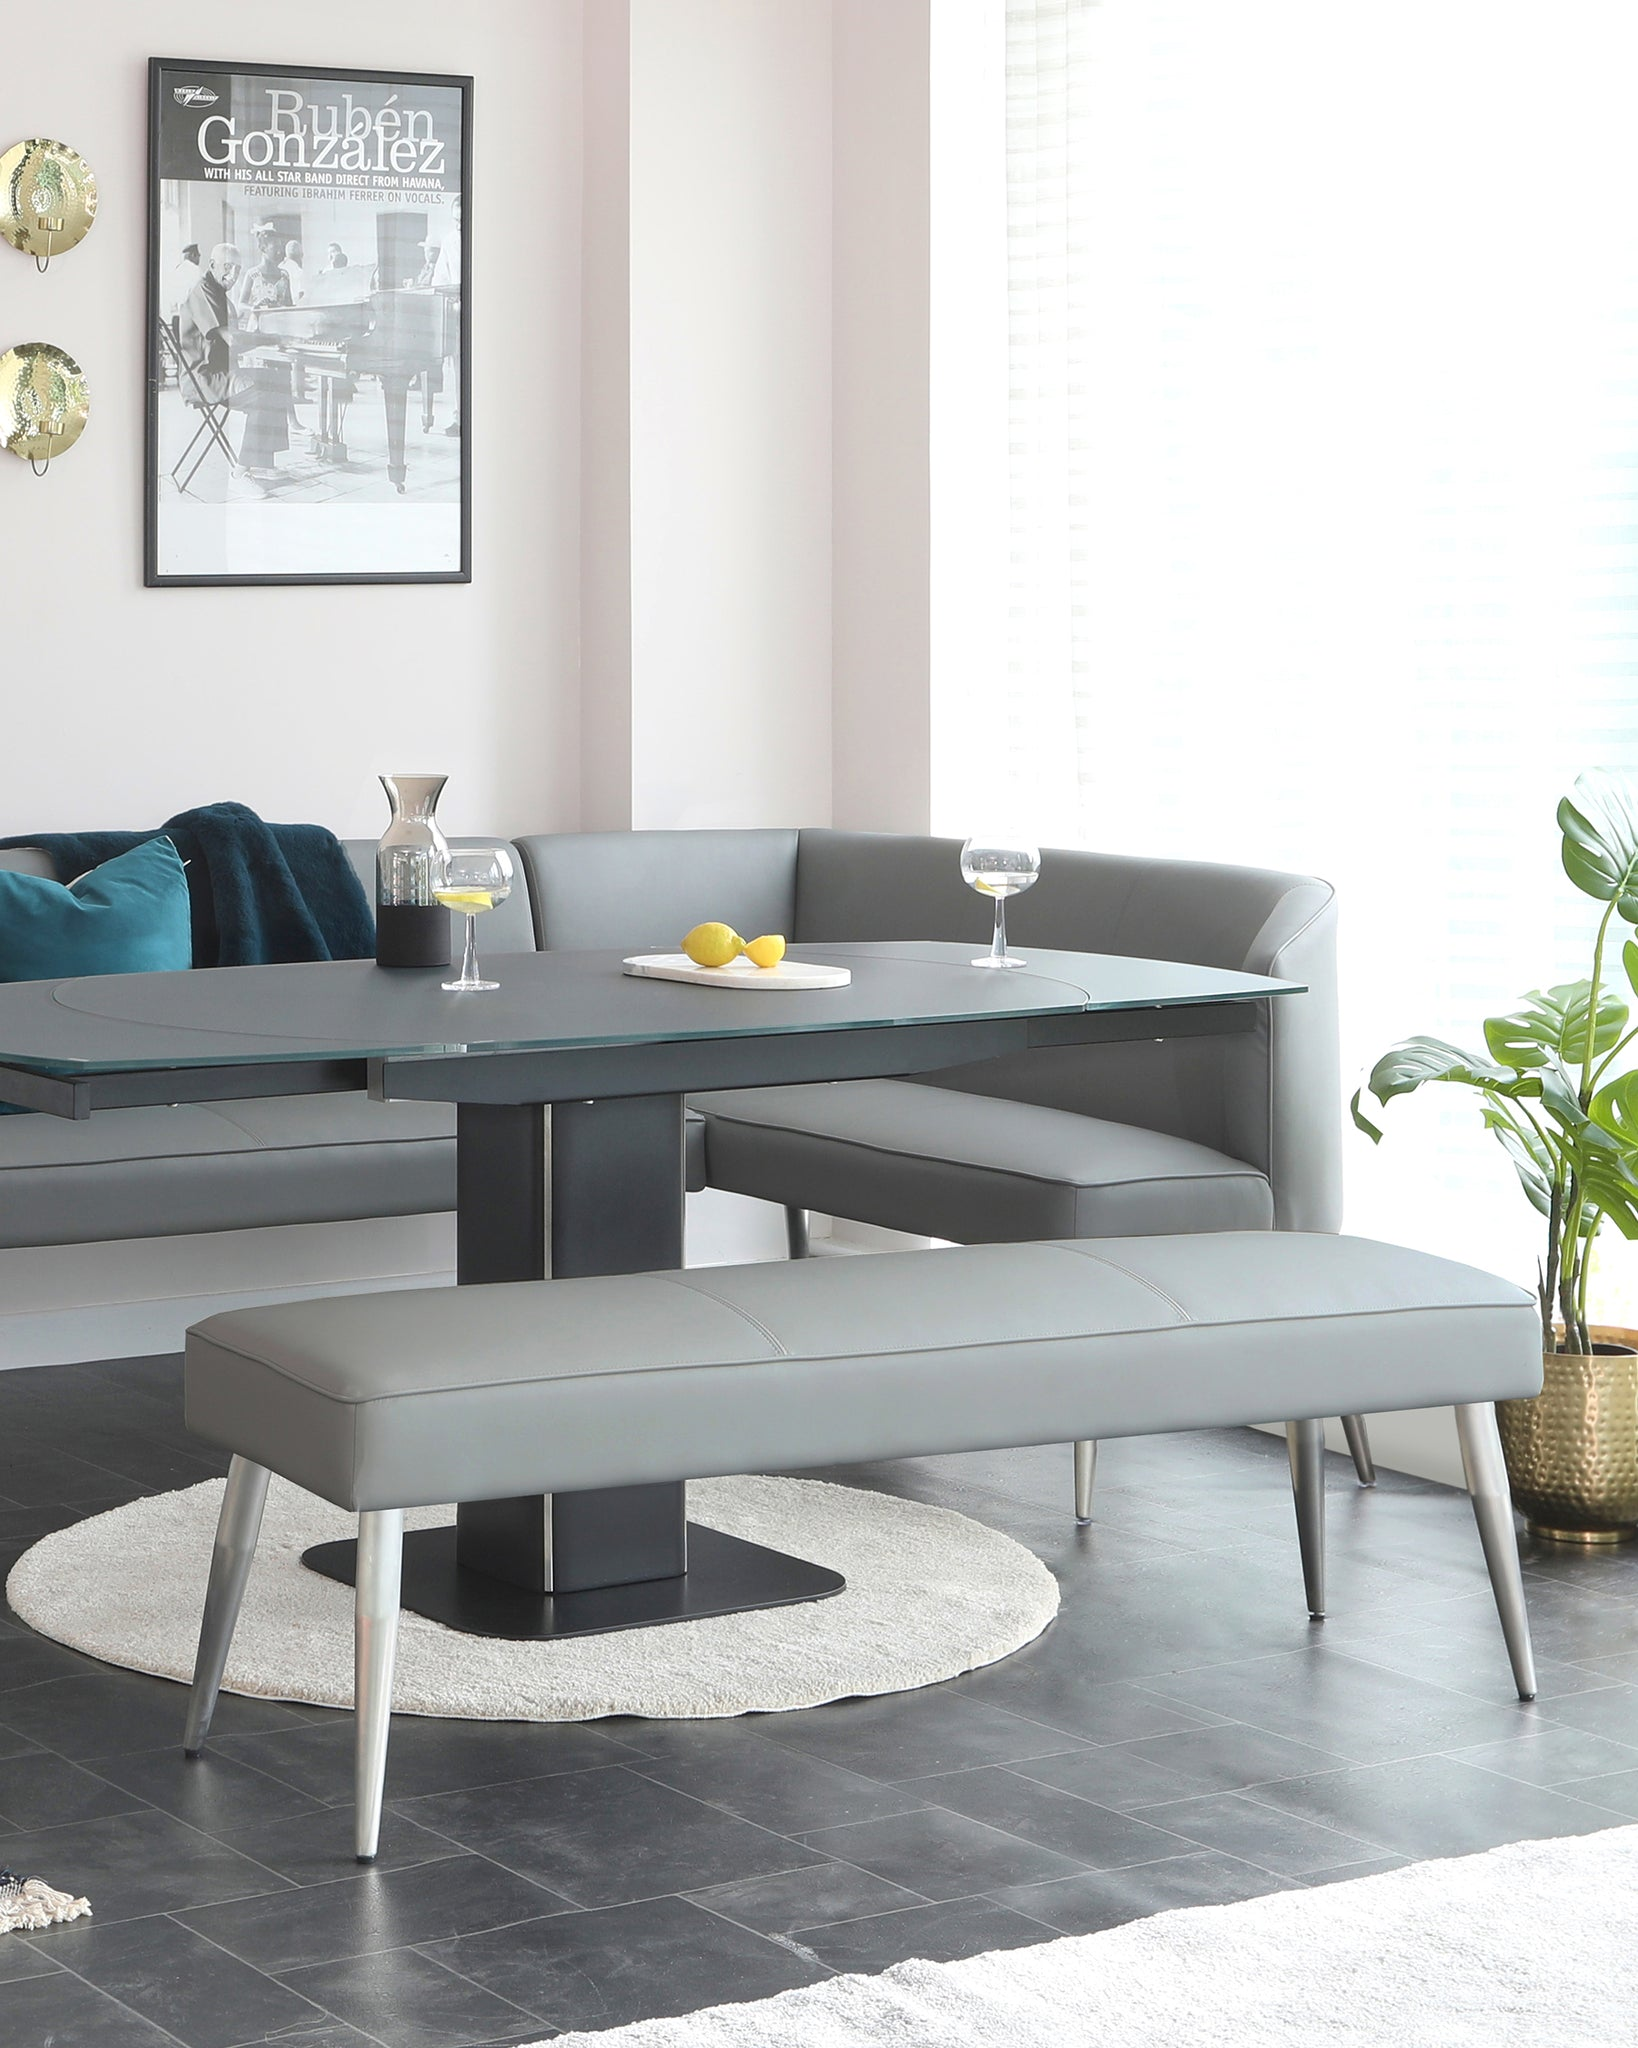 Mellow Grey Faux Leather And Stainless Steel 3 Seater Without Backrest Dining Bench